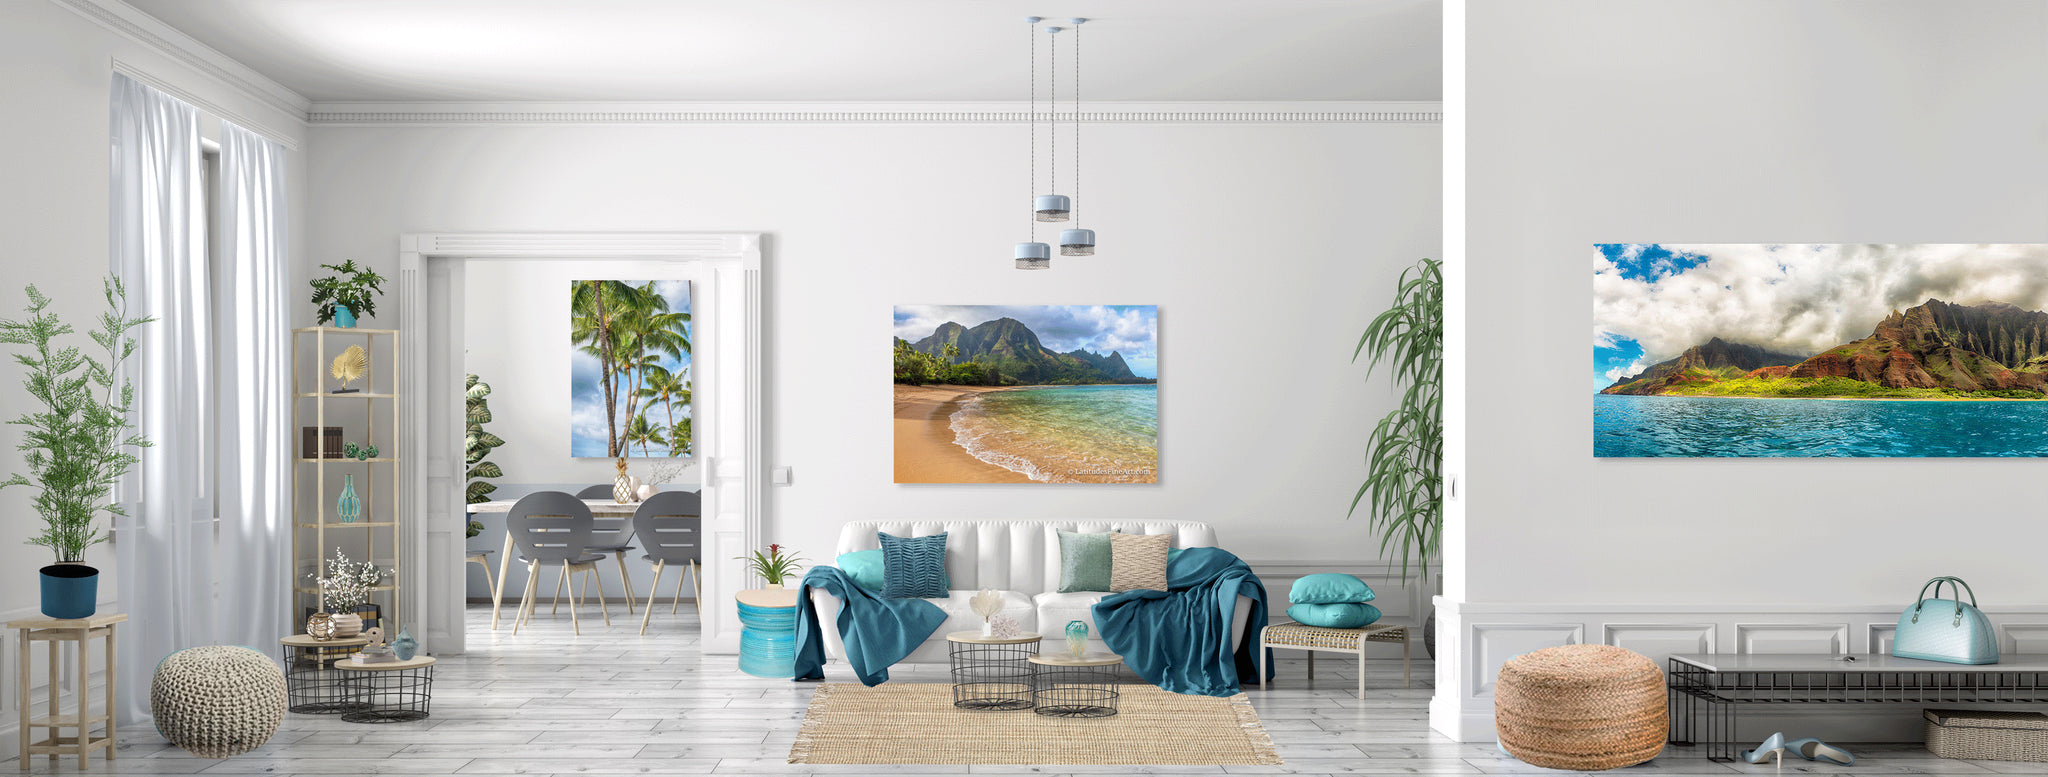 Transform a basic room with artwork as your inspiration and Hawaiian interior styling.